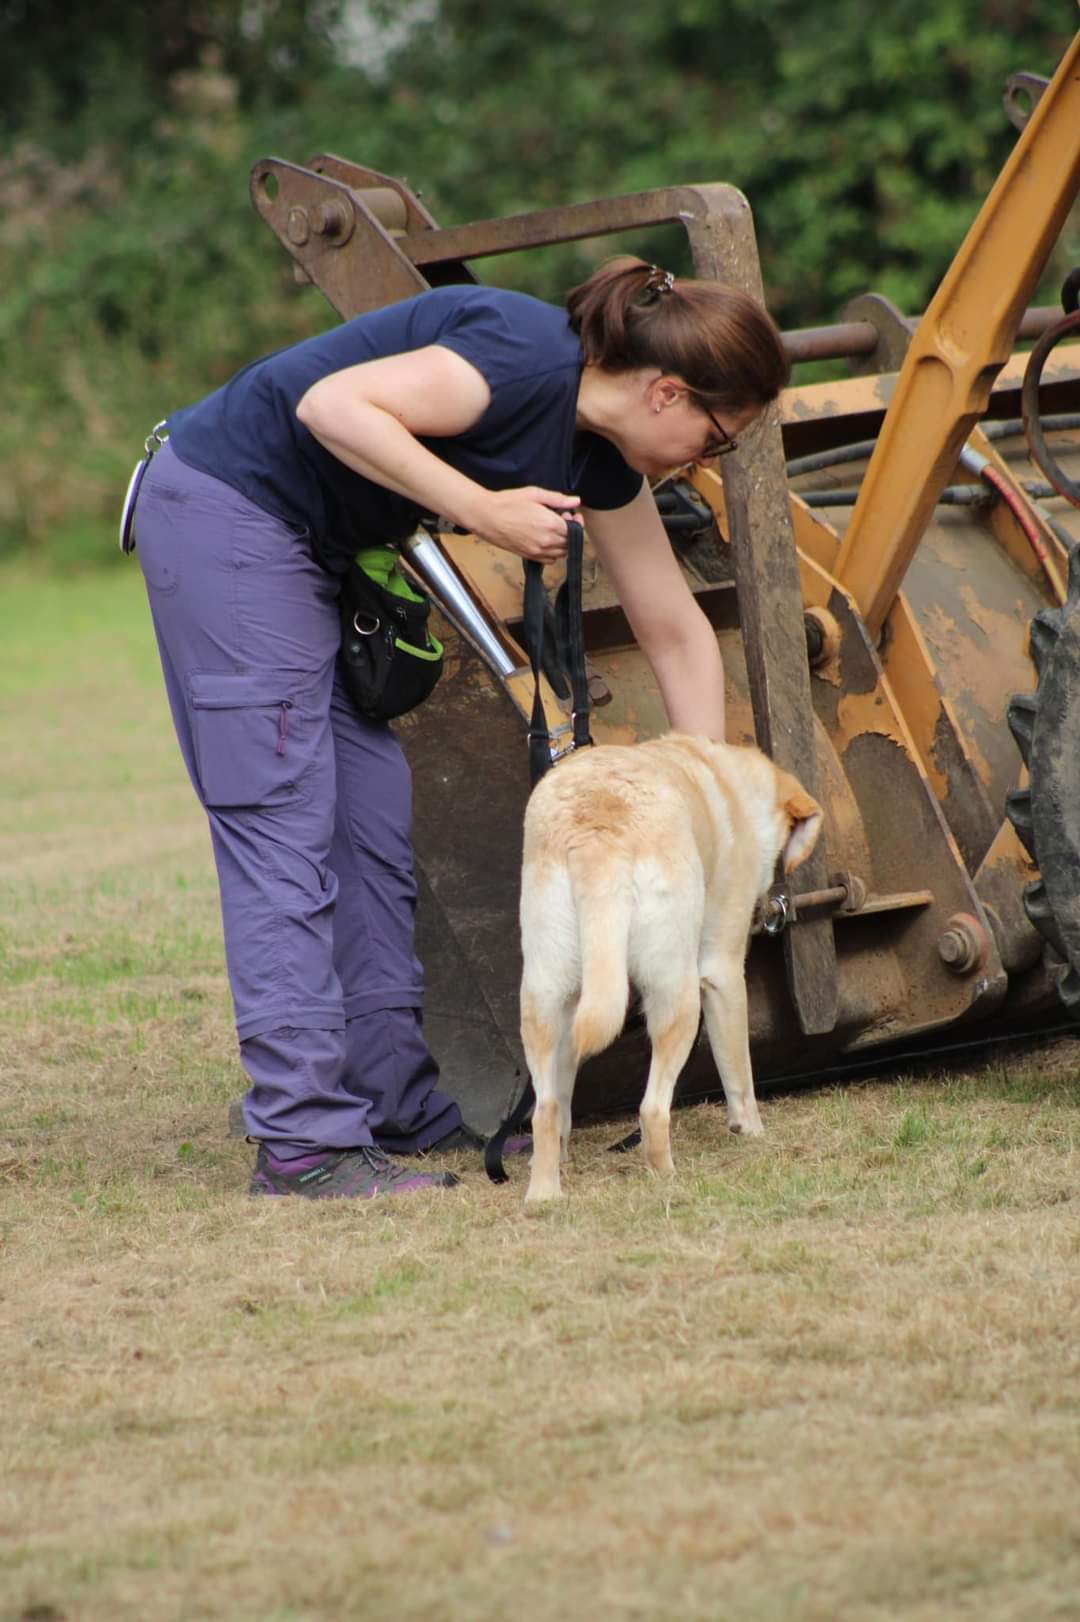 Scentwork training photo - tractor